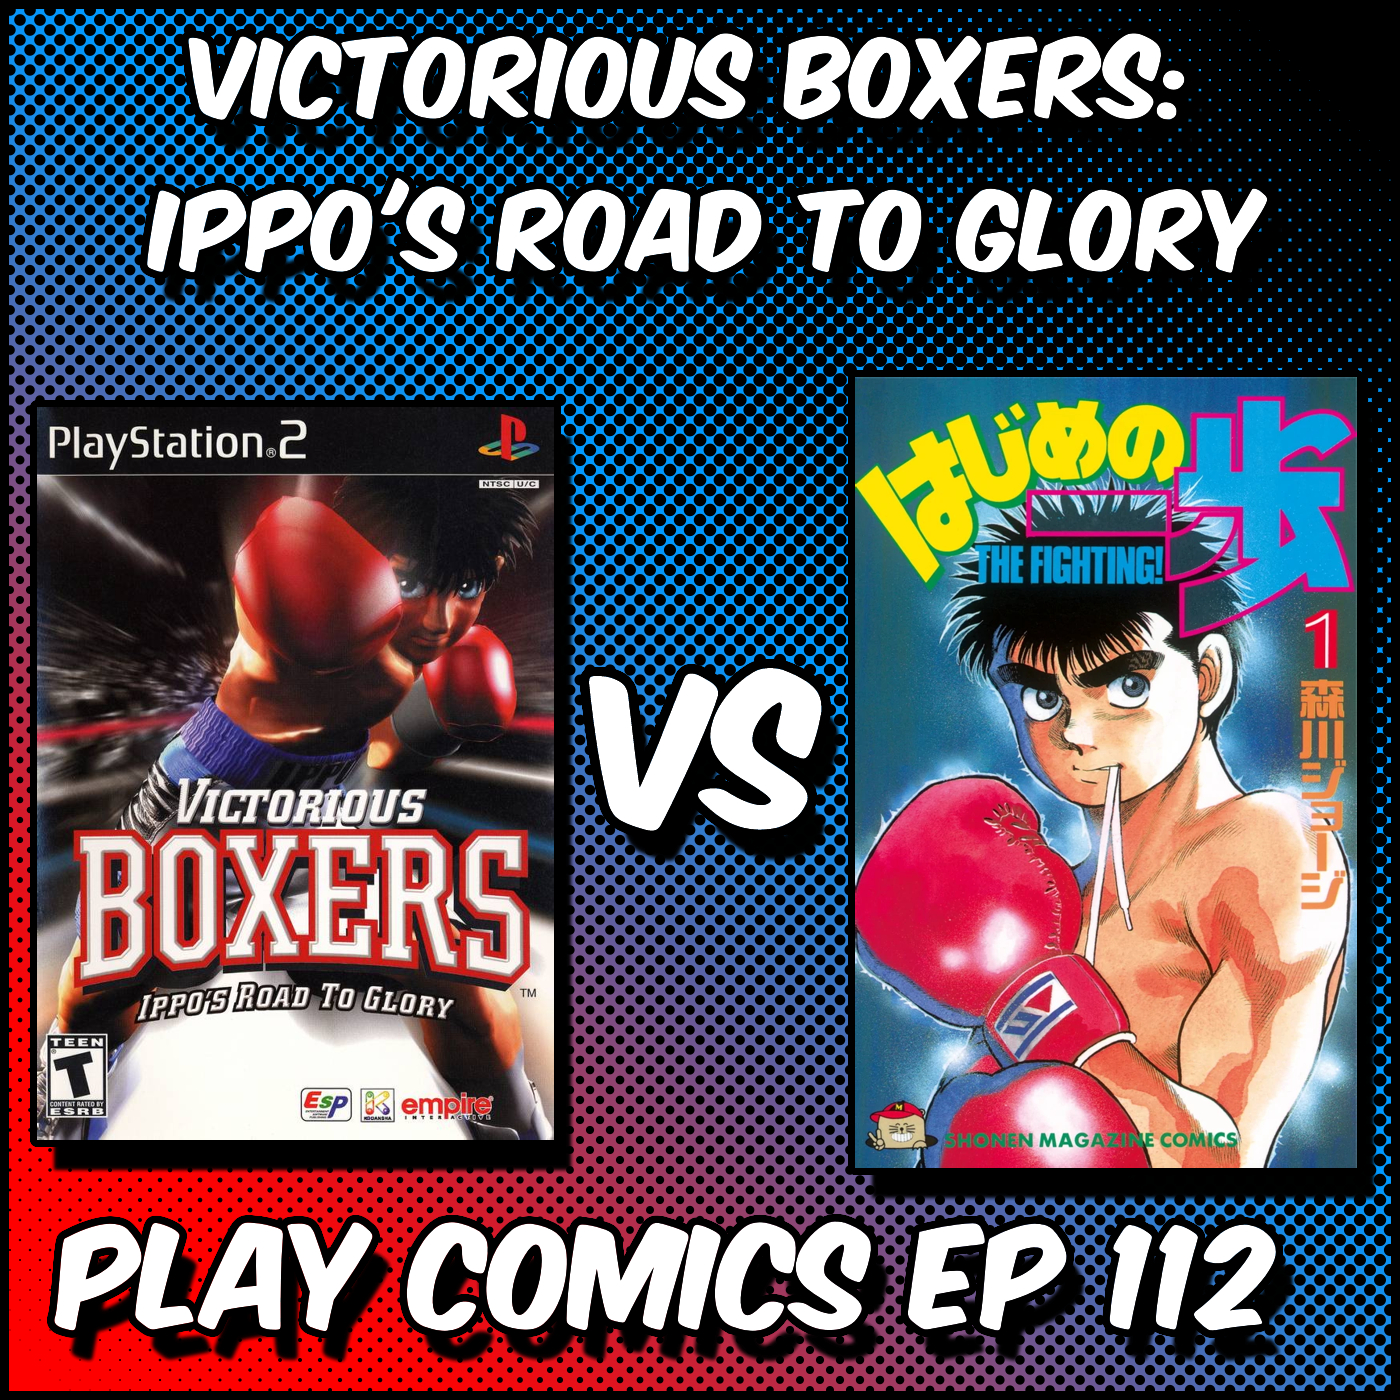 Victorious Boxers Ippo's Road to Glory with Trevor H (Catching Up on Cinema)